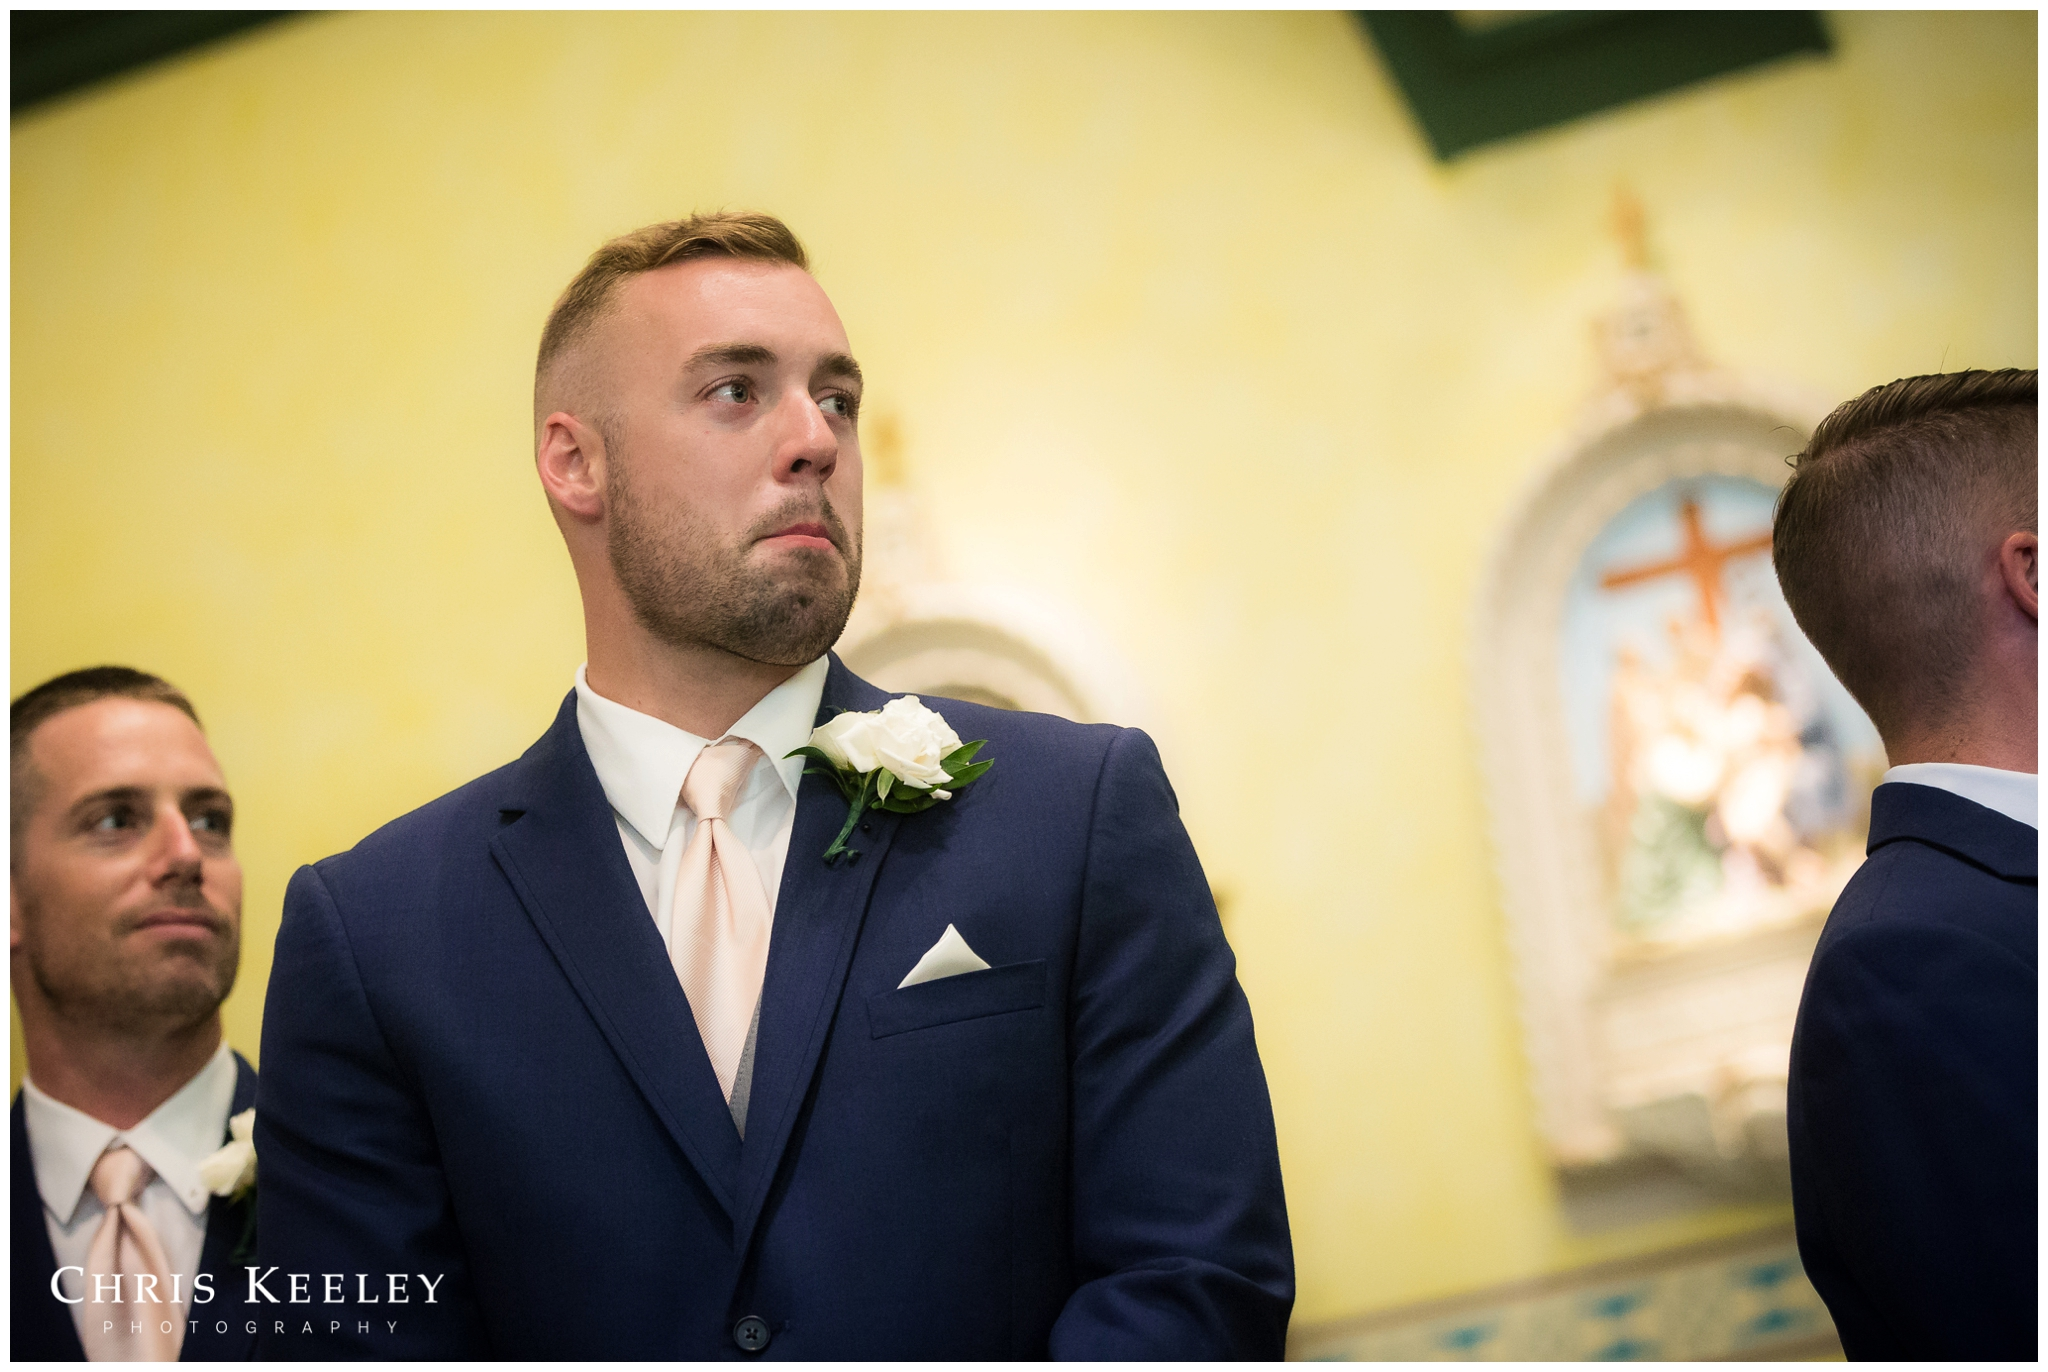 groom-emotional-seeing-bride-first-time.jpg